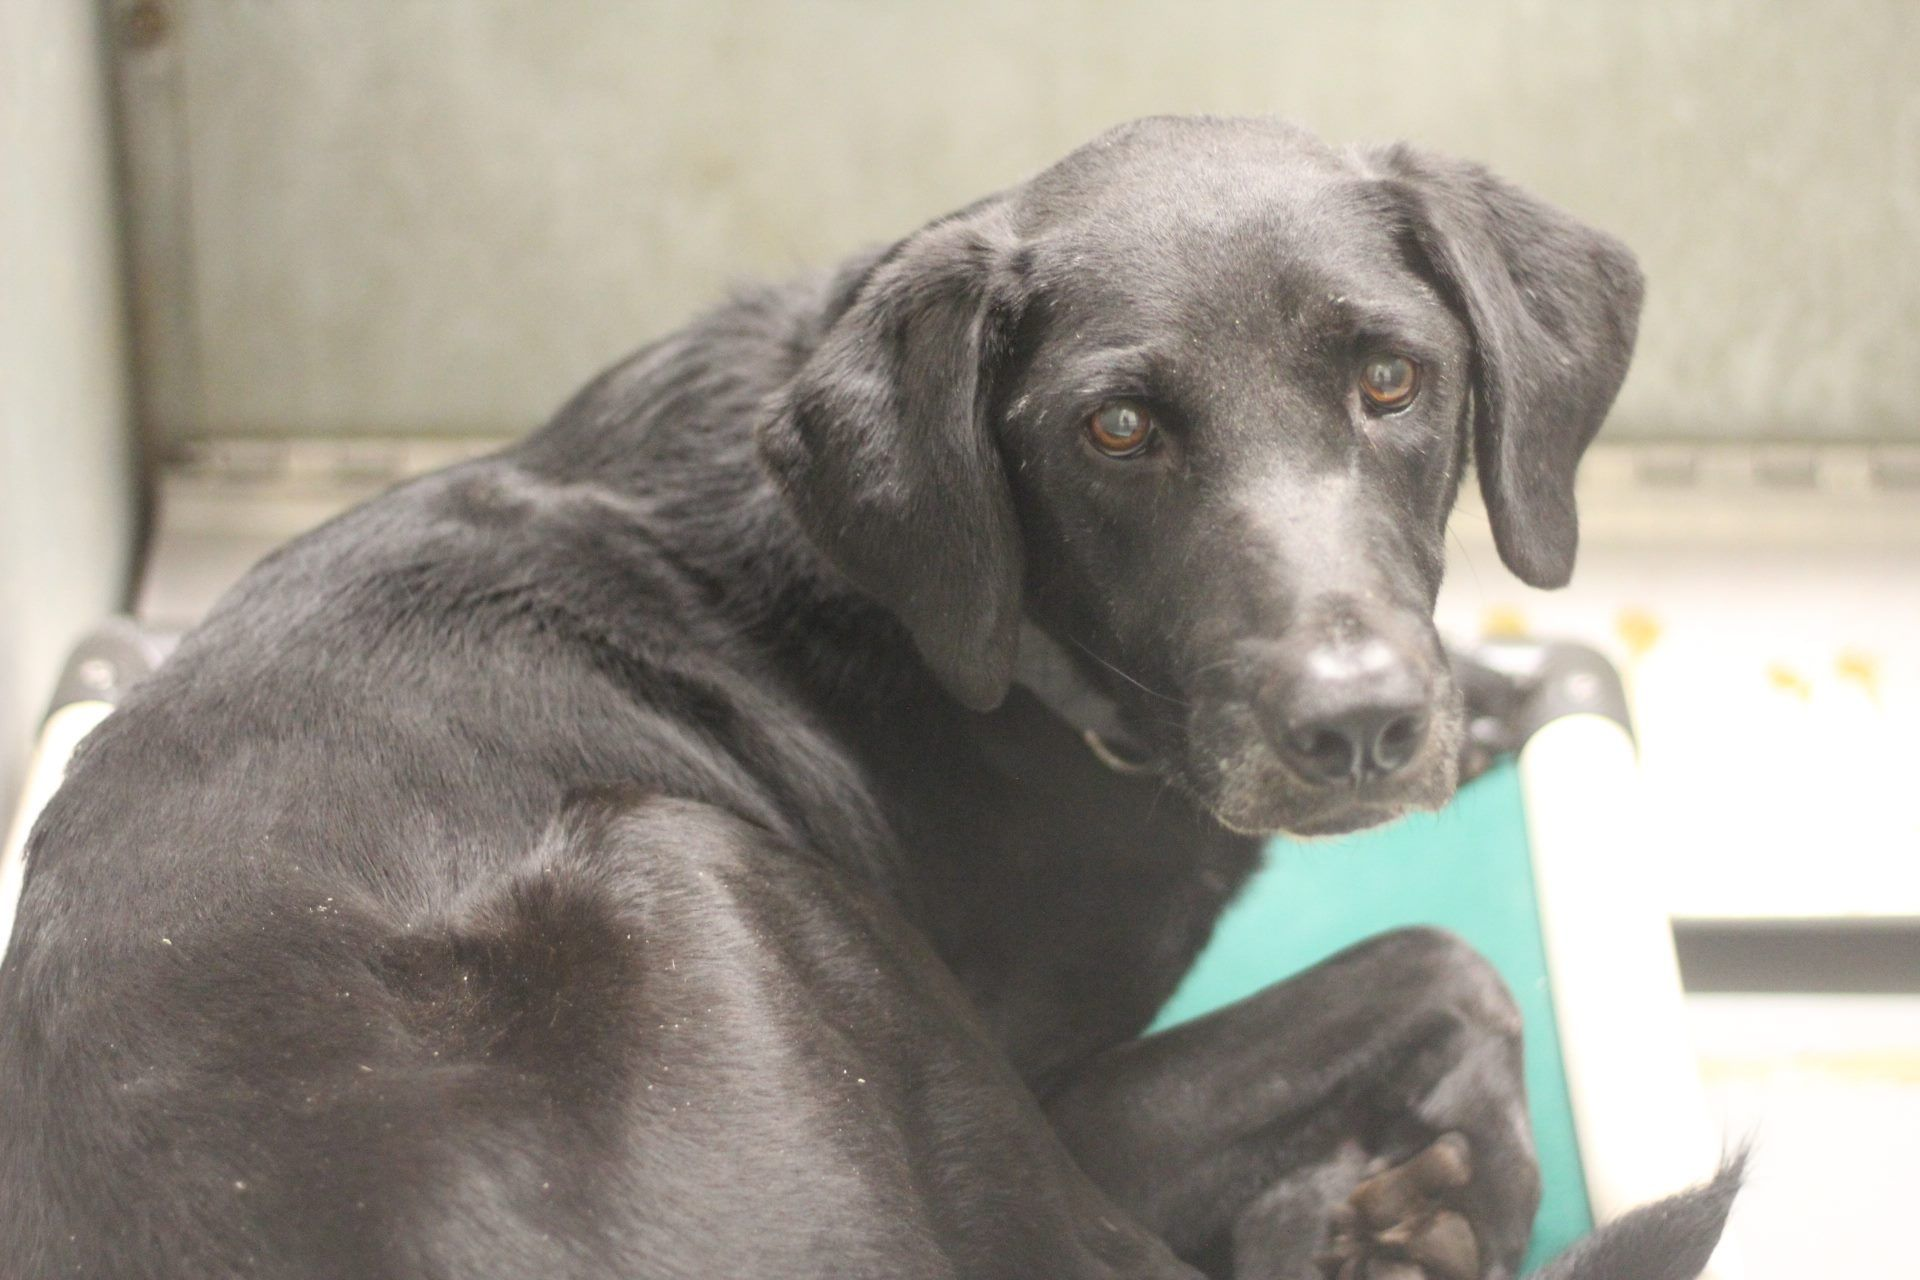 12 19 16 Conroe Tx Southeast Texas Labrador Retriever Rescue Like This Page Yesterday Avail With Images Labrador Retriever Rescue Dog Adoption Labrador Retriever